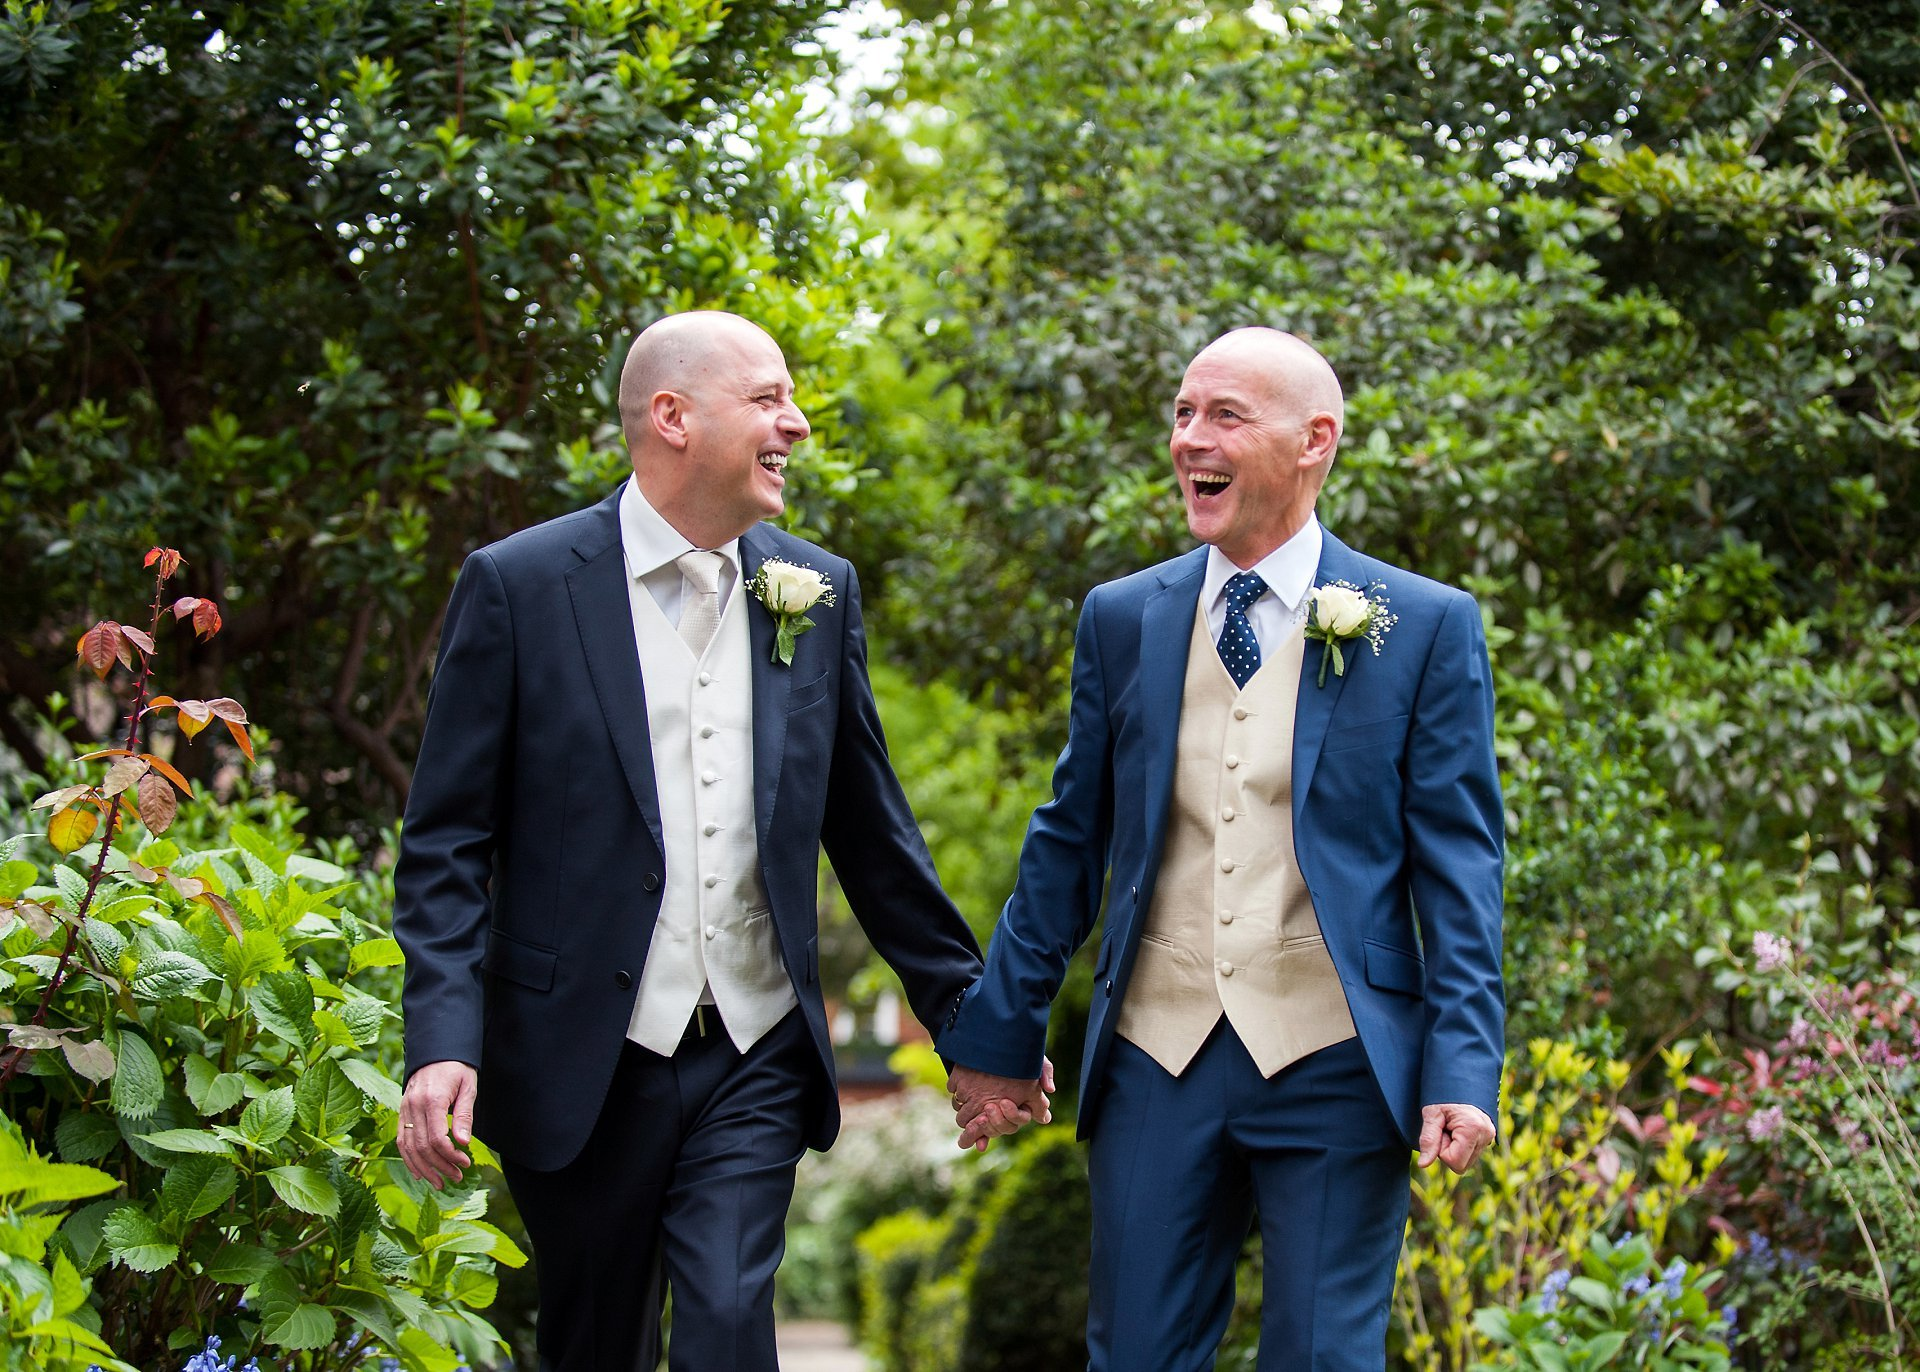 Jose and George laughing together as they celebrate their Chelsea wedding